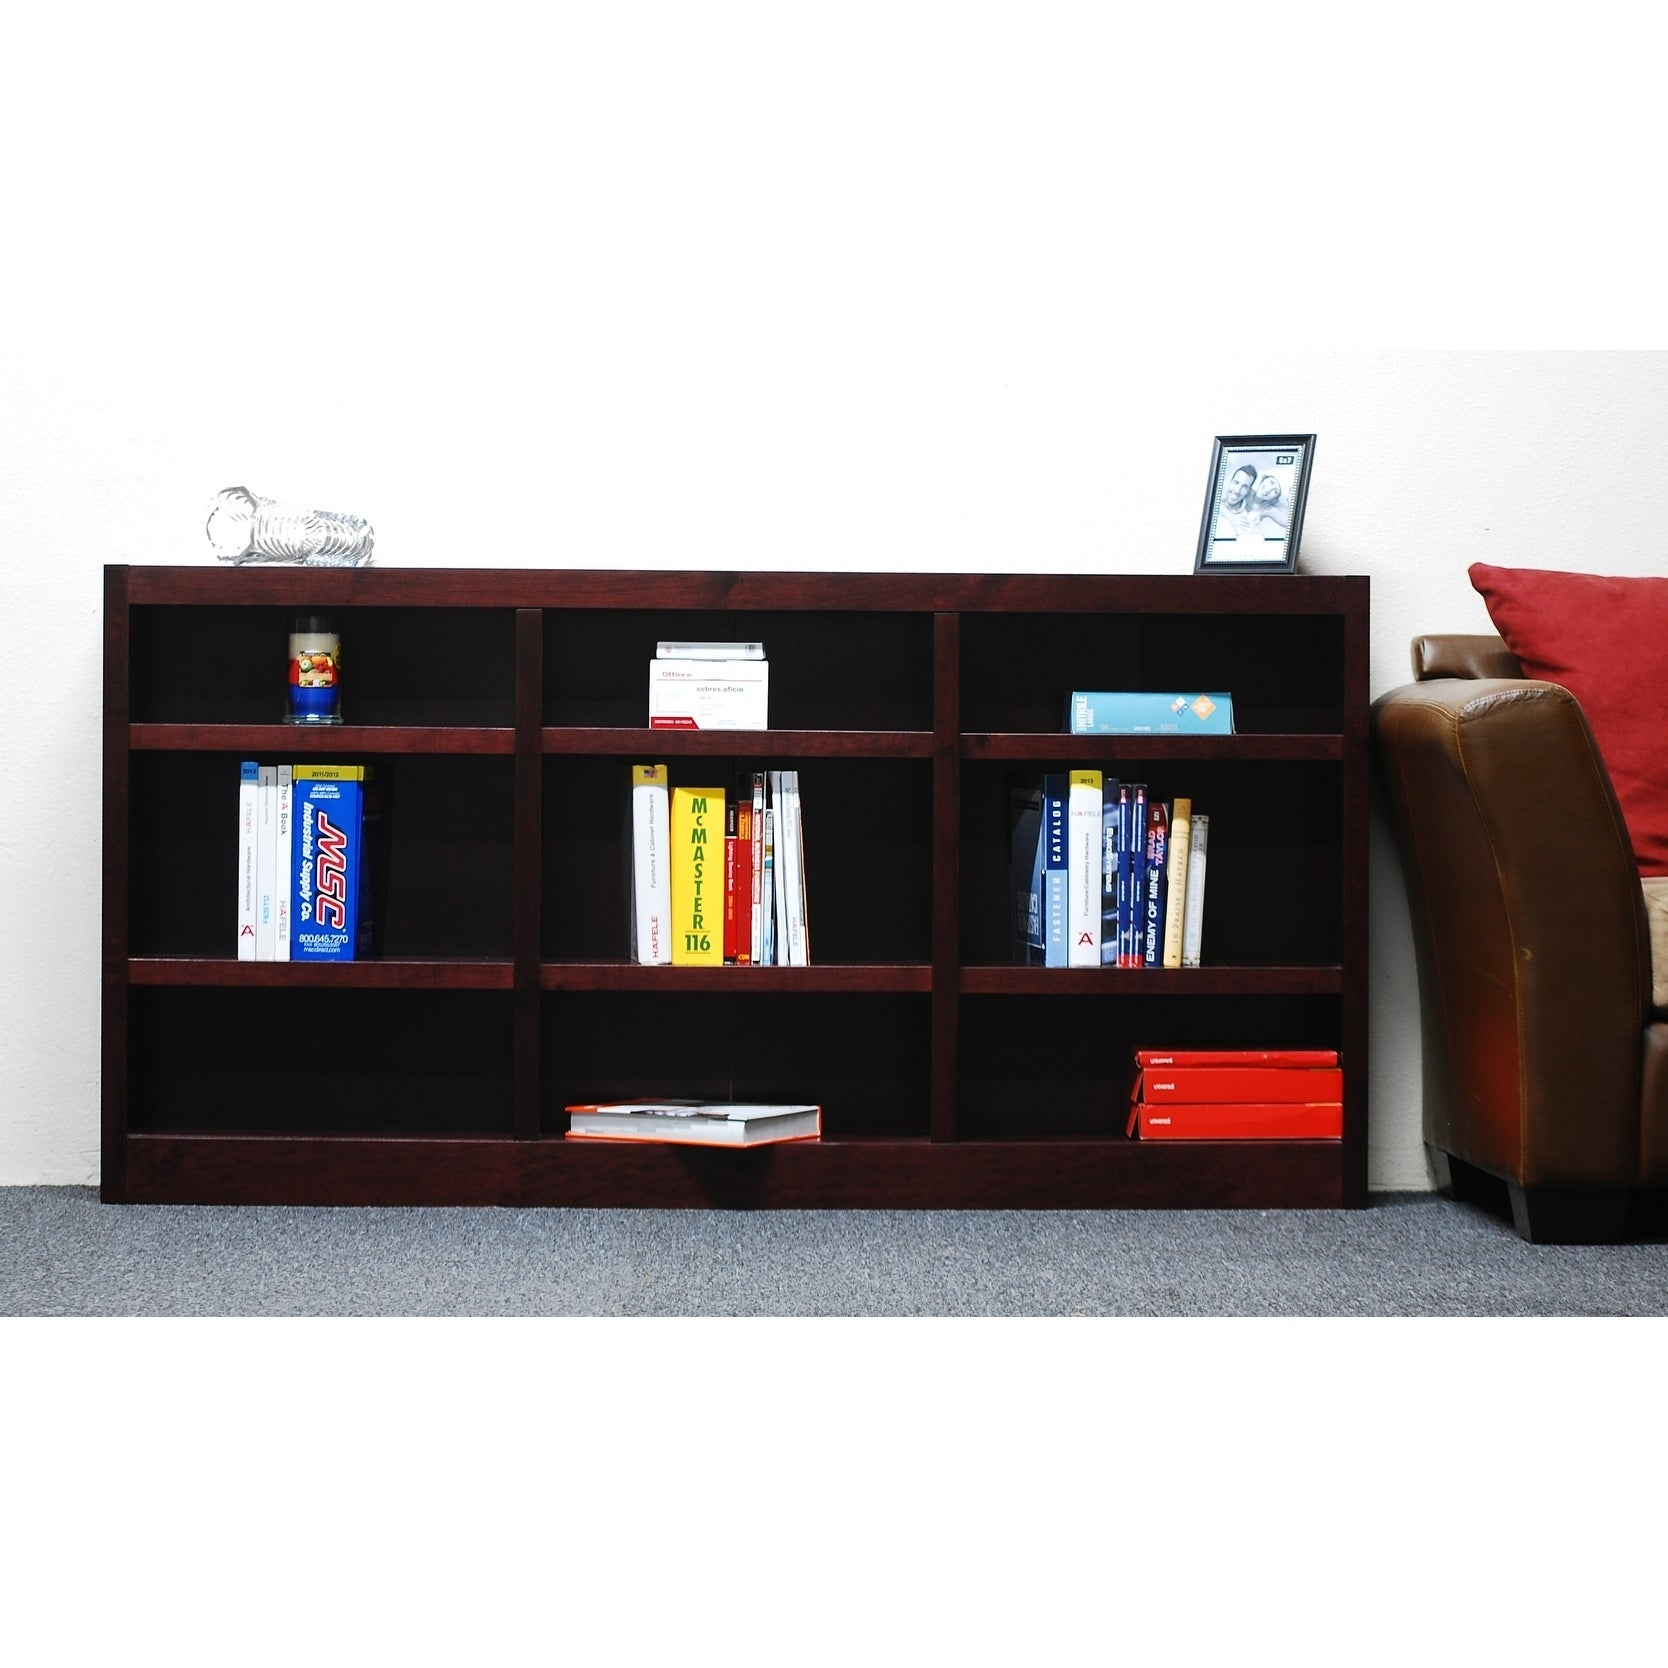 Shop Concepts In Wood MI7236 72 X 36 Wall Storage Unit, Cherry Finish    Free Shipping Today   Overstock.com   22639054